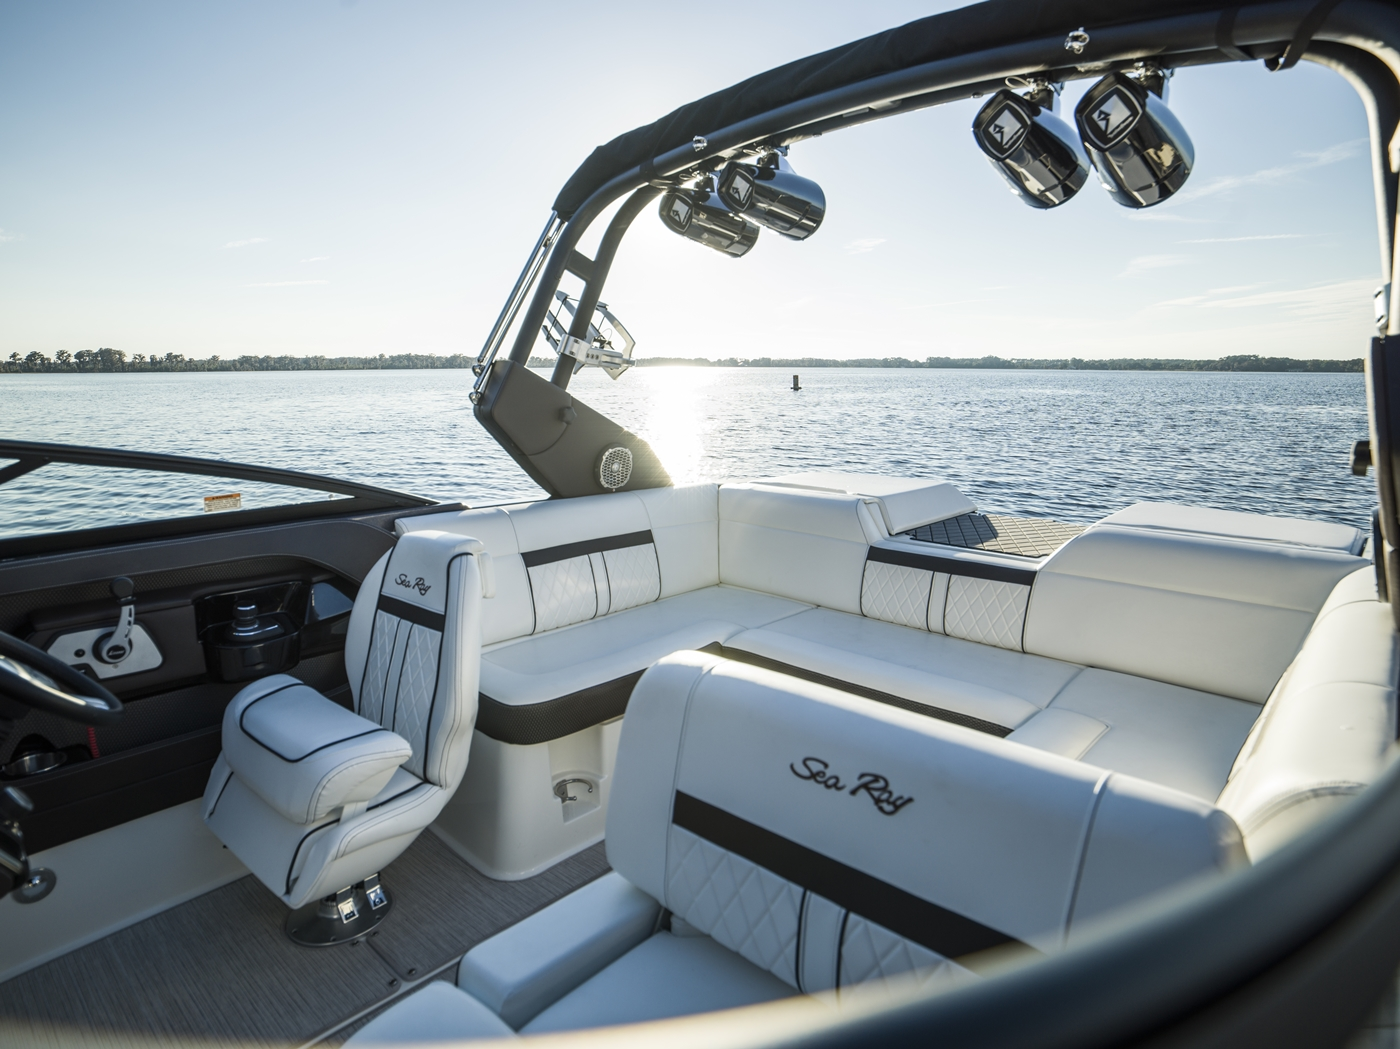 2017 Sea Ray boat for sale, model of the boat is SLX-W 230 & Image # 15 of 26